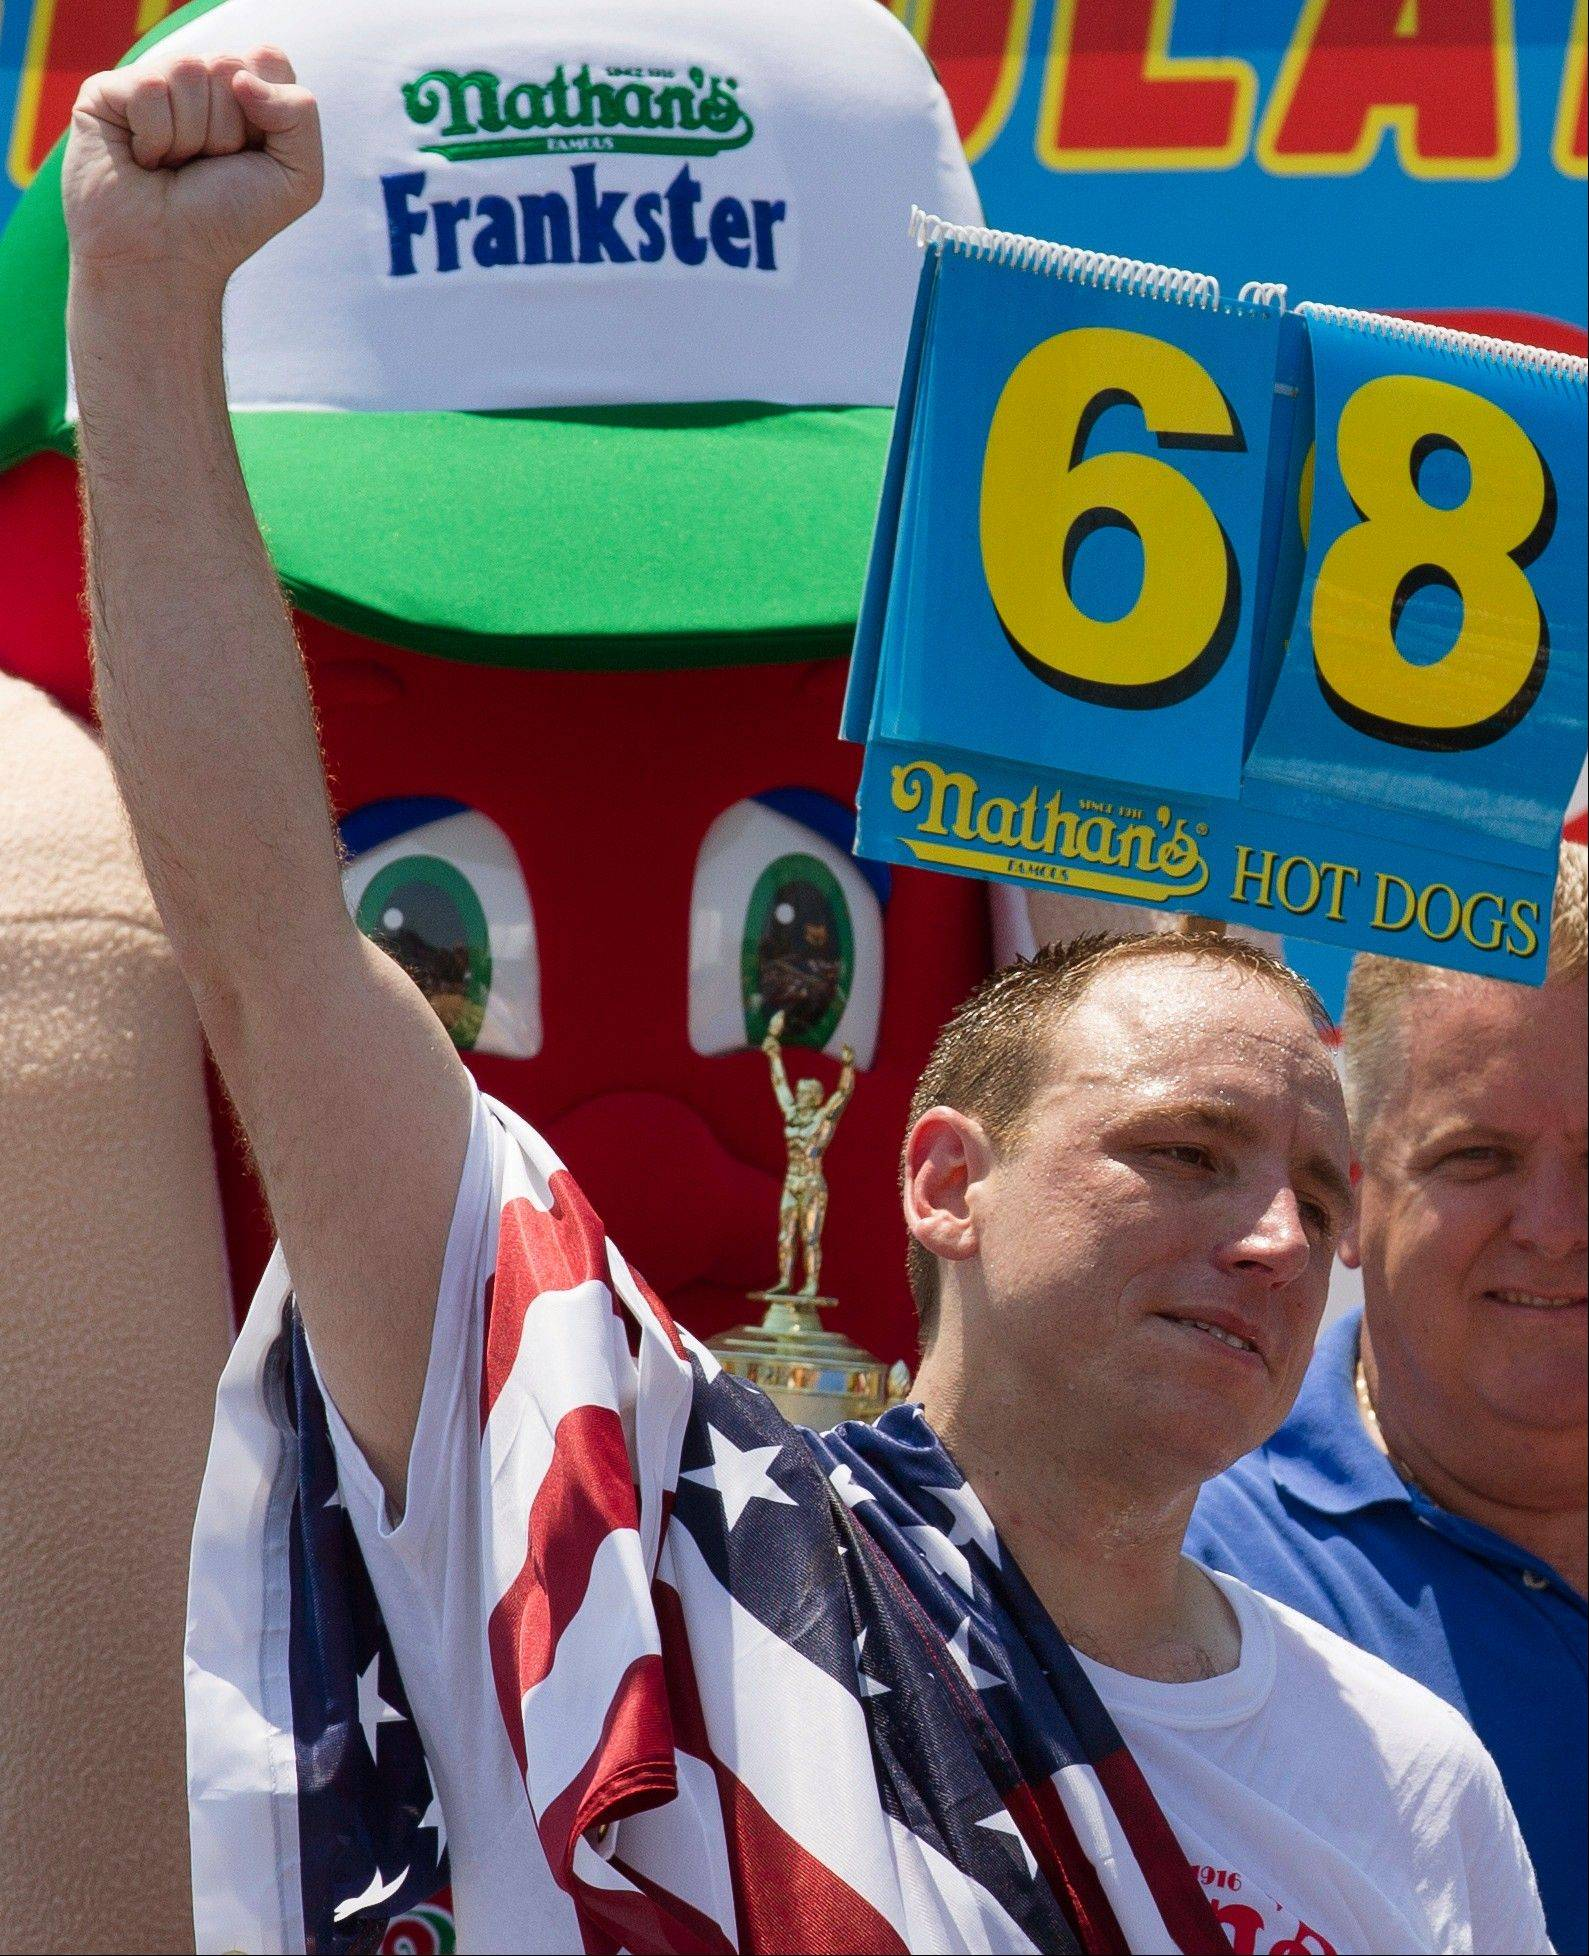 ASSOCIATED PRESS Five-time reigning champion Joey Chestnut celebrates after he wins his sixth Nathan's Famous Hot Dog Eating World Championship with a total of 68 hot dogs and buns Wednesday at Coney Island.